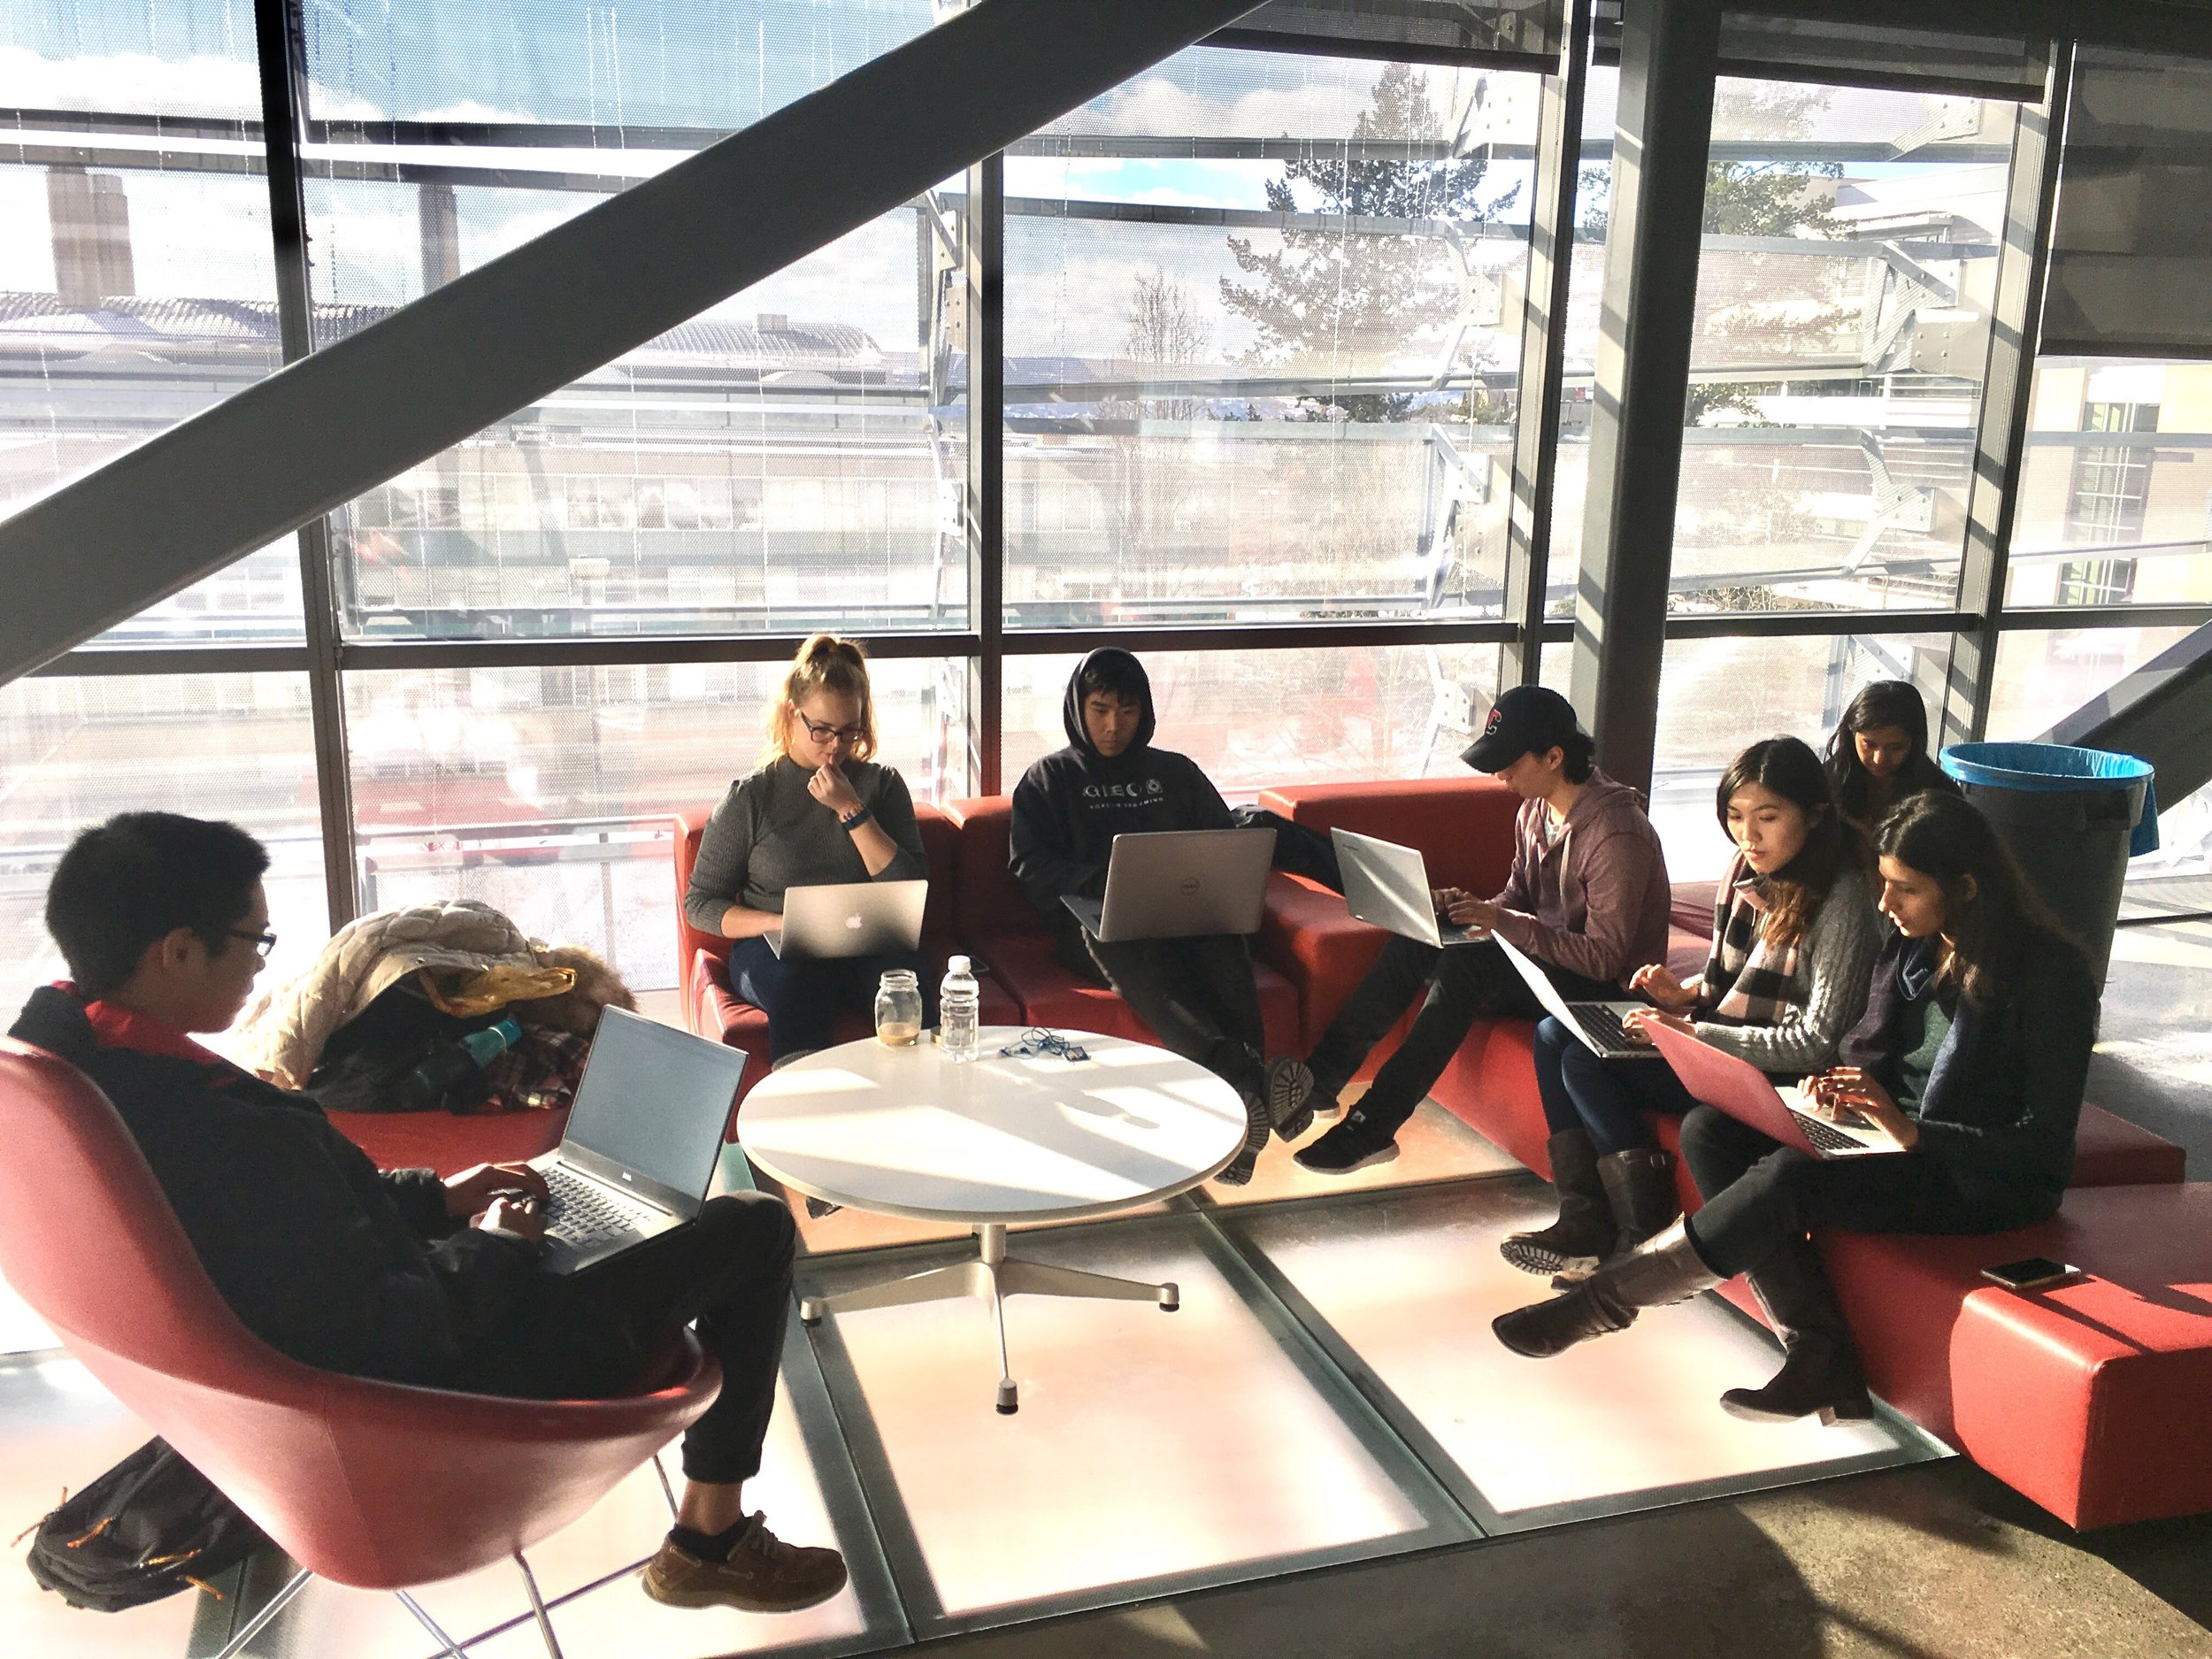 Exposure - We connect industry and passionate students together through our focus on data science. Come to our networking events, company talks, and mentoring sessions to learn more about what a career in data science is like.